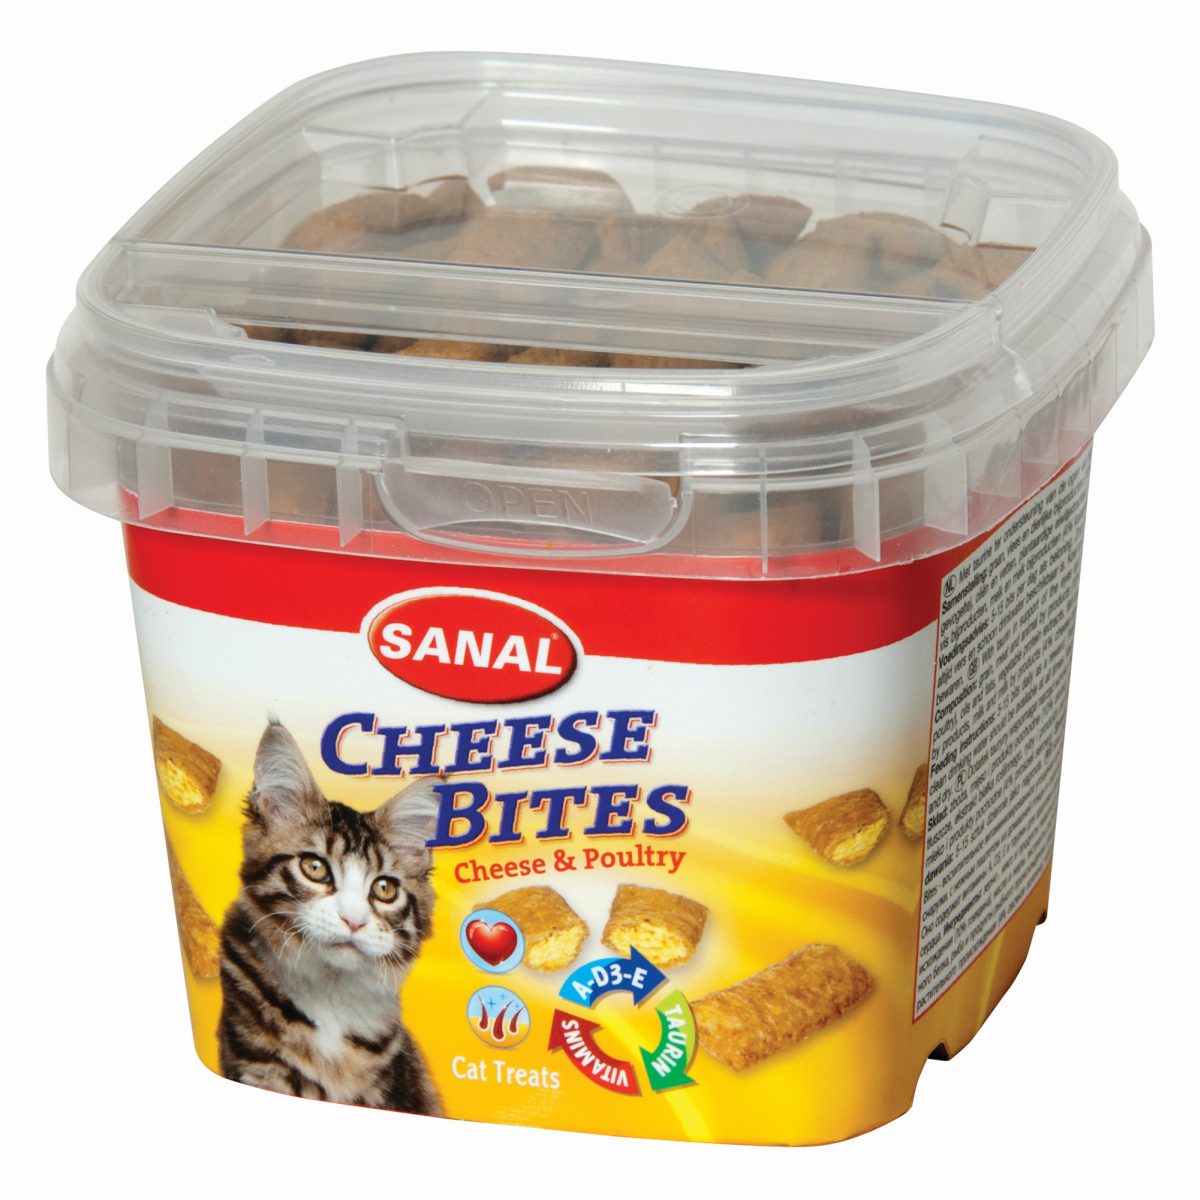 SANAL CHEESE BITES CUP 75GR J 00003